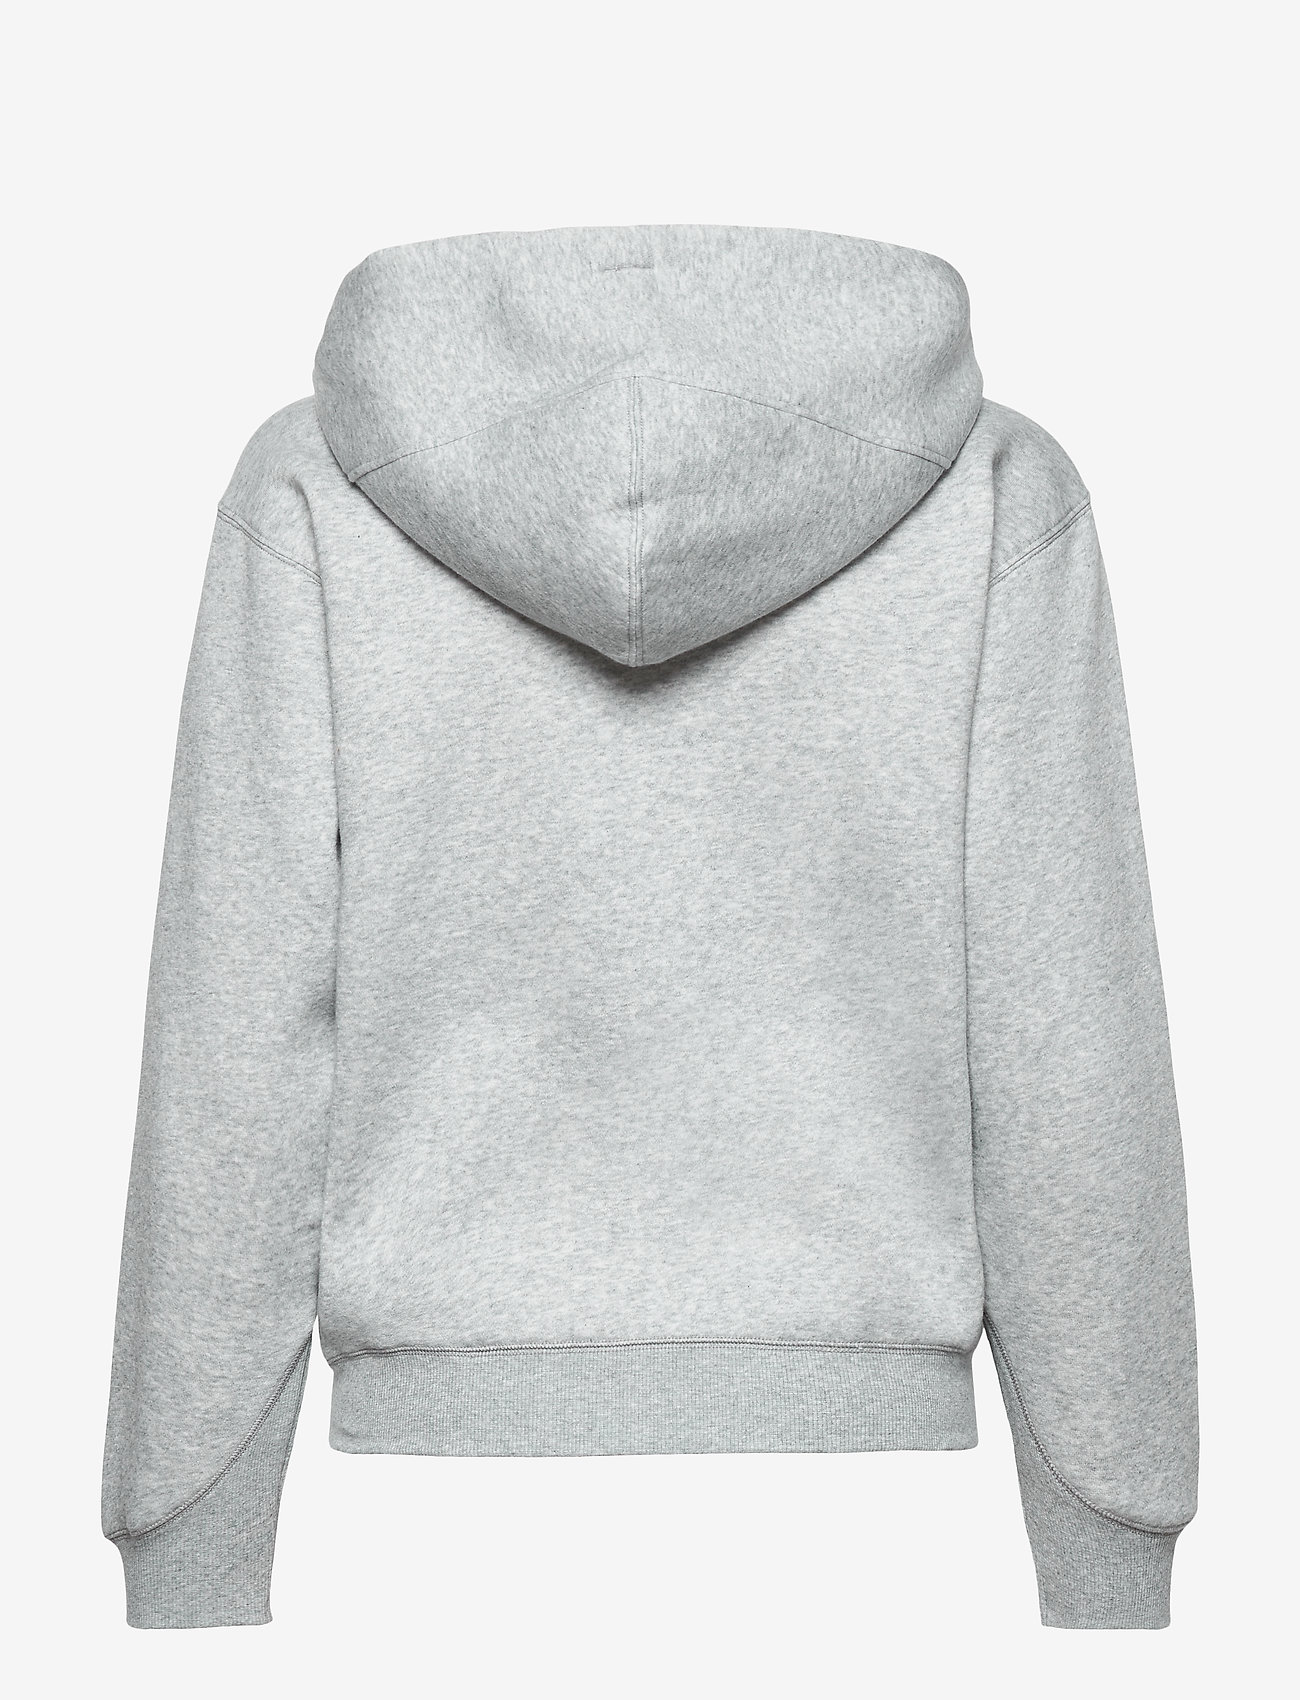 G-star RAW - Premium core hdd zip thru sw wmn l- - hoodies - grey htr - 1